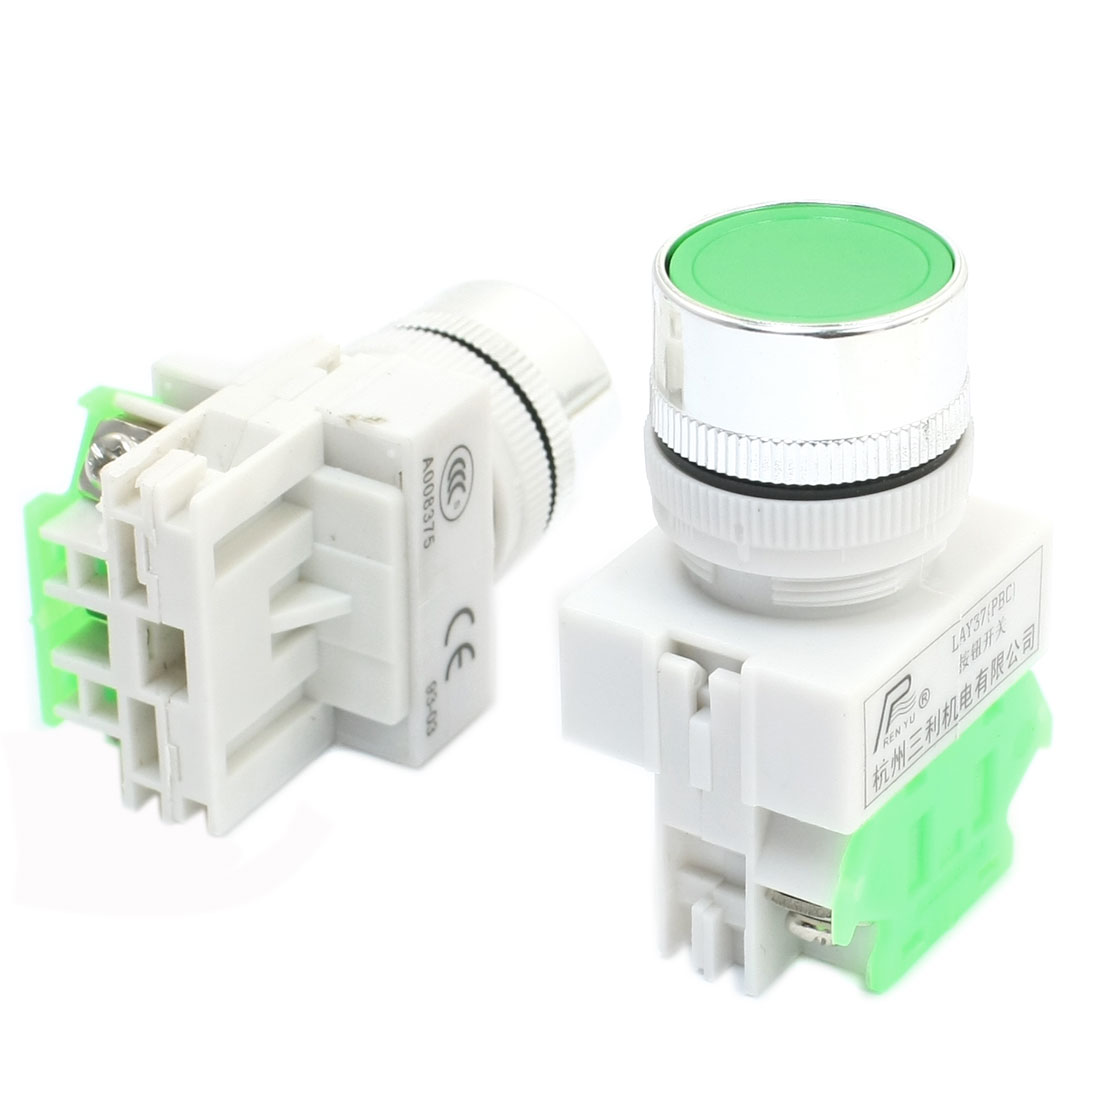 2Pcs Ui 600V Ith 10A 22mm Thread Panel Mount SPST 1NO Normal Open Momentary Action Plastic Start Push Button Switch LAY37-10BN